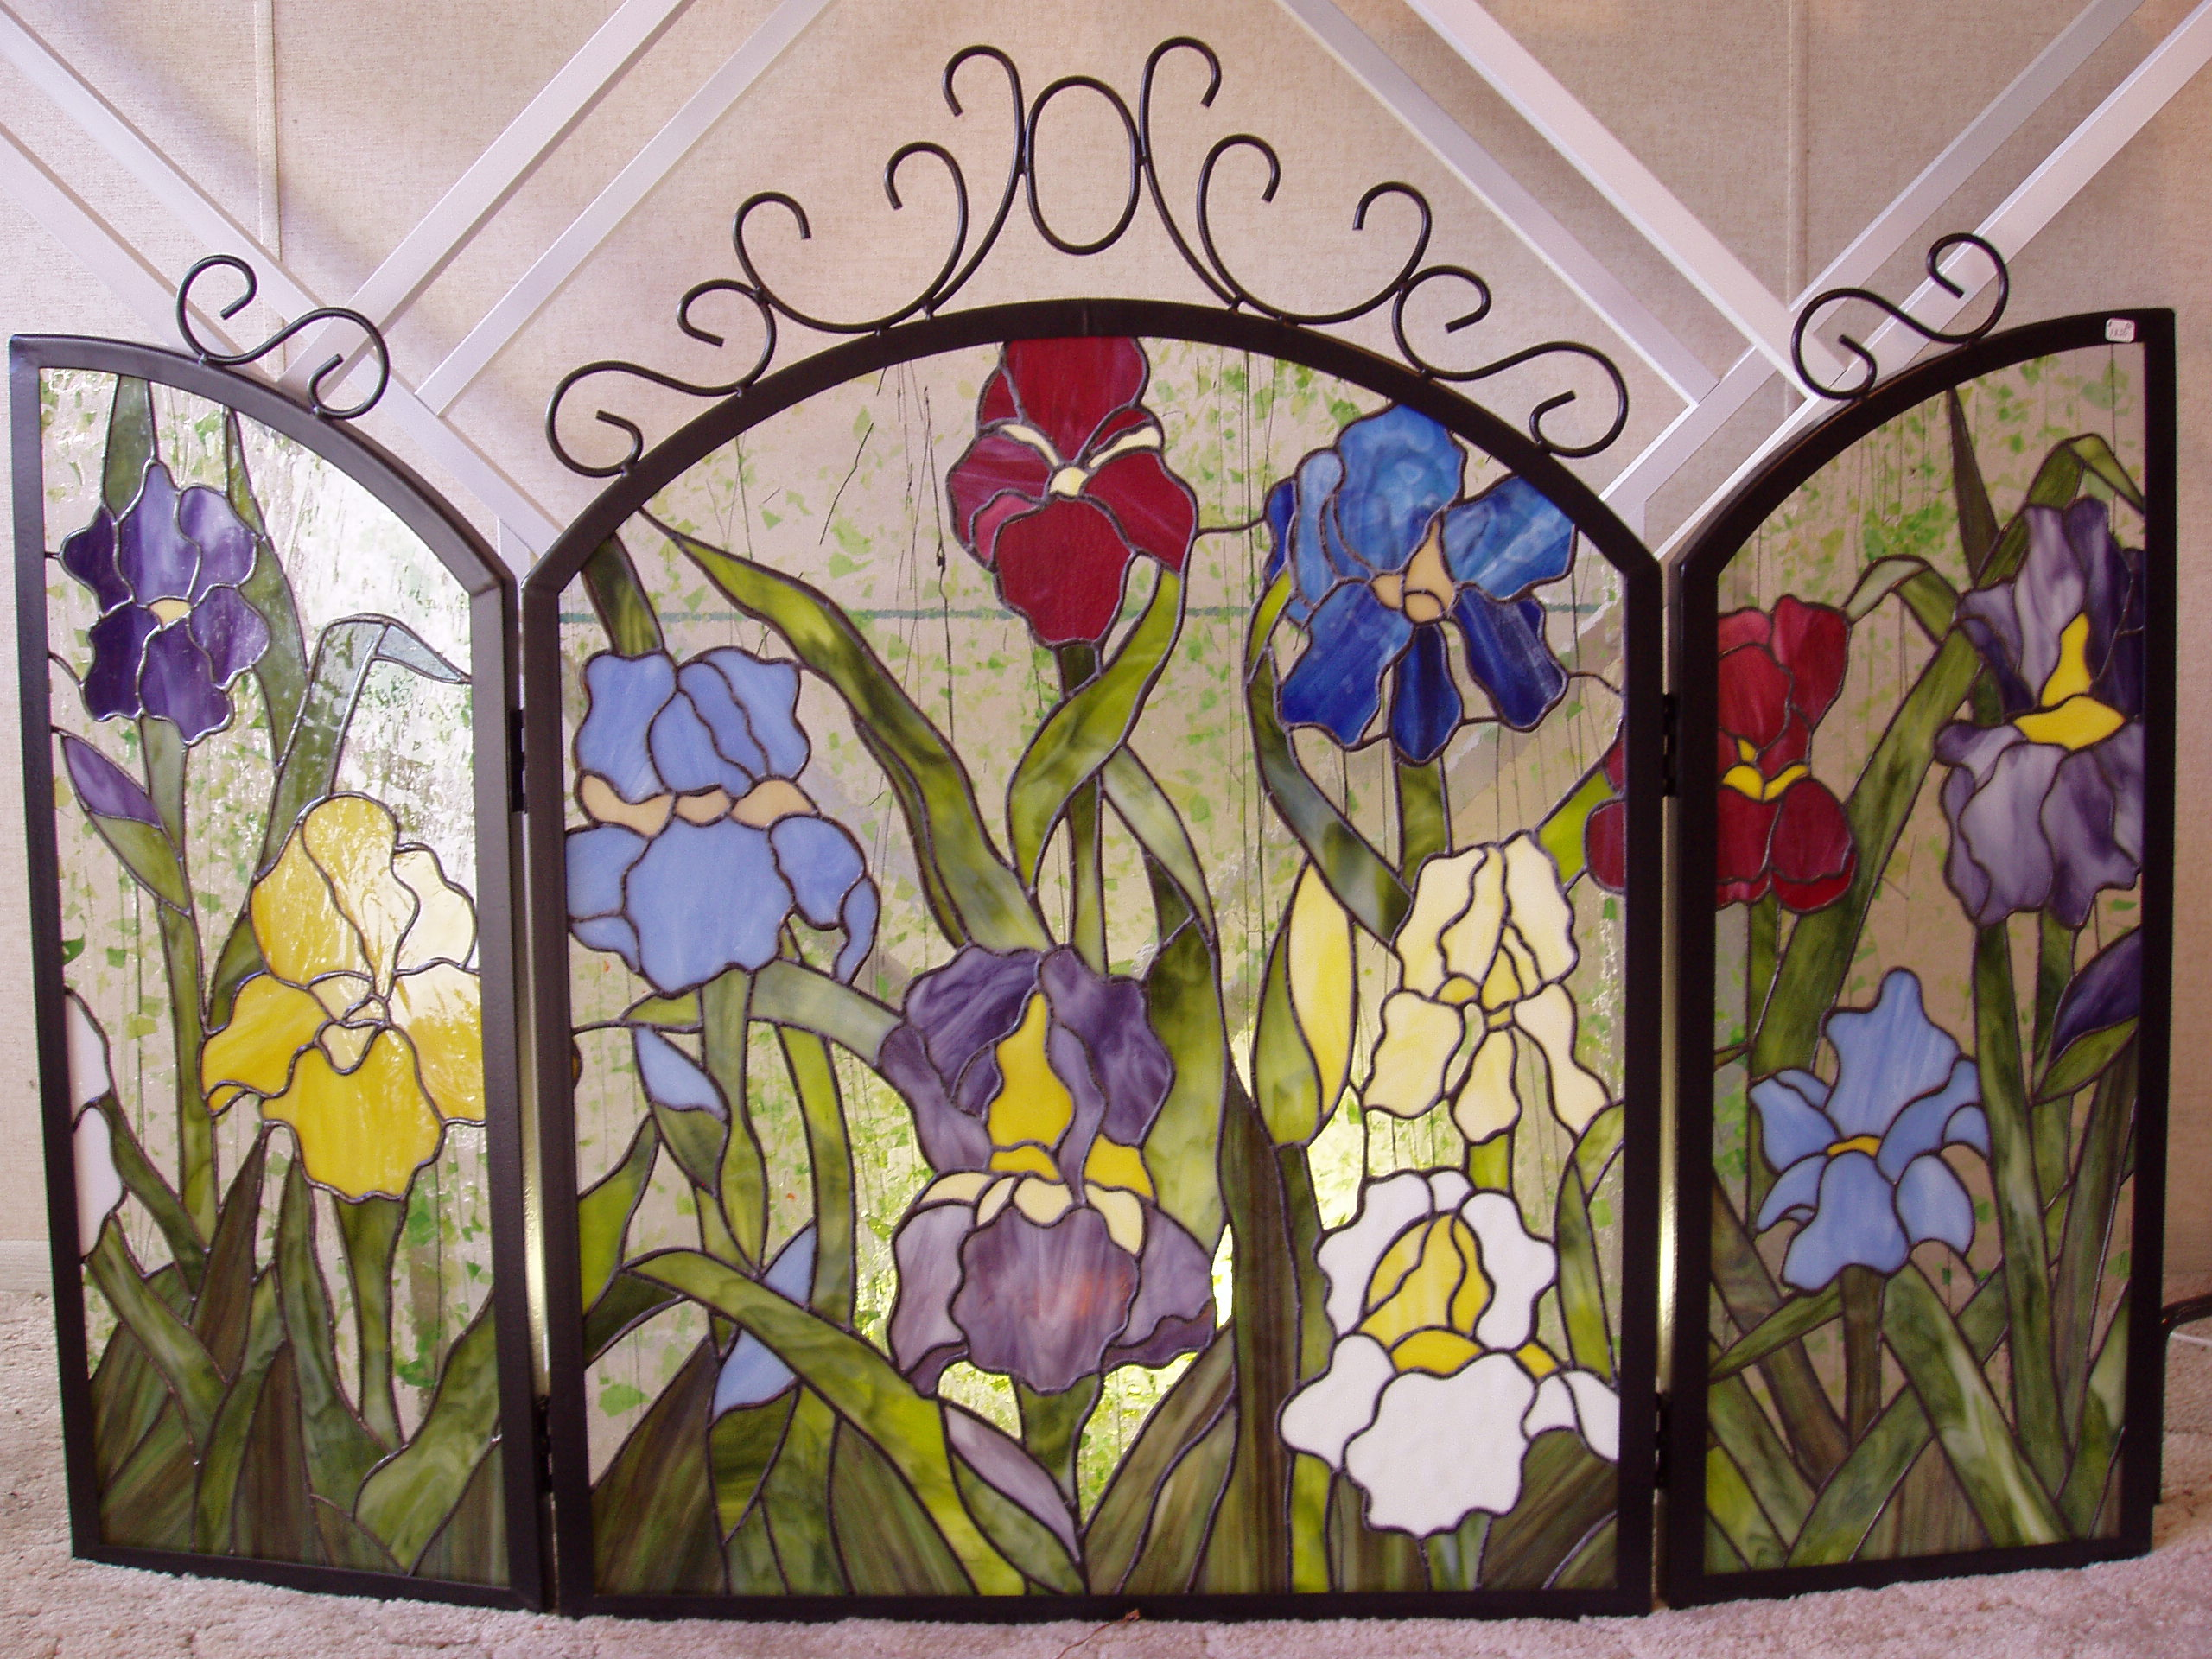 Amazing Stained Glass Fireplace Screen Designs with Intriguing Patterns  Ideas 4 Homes